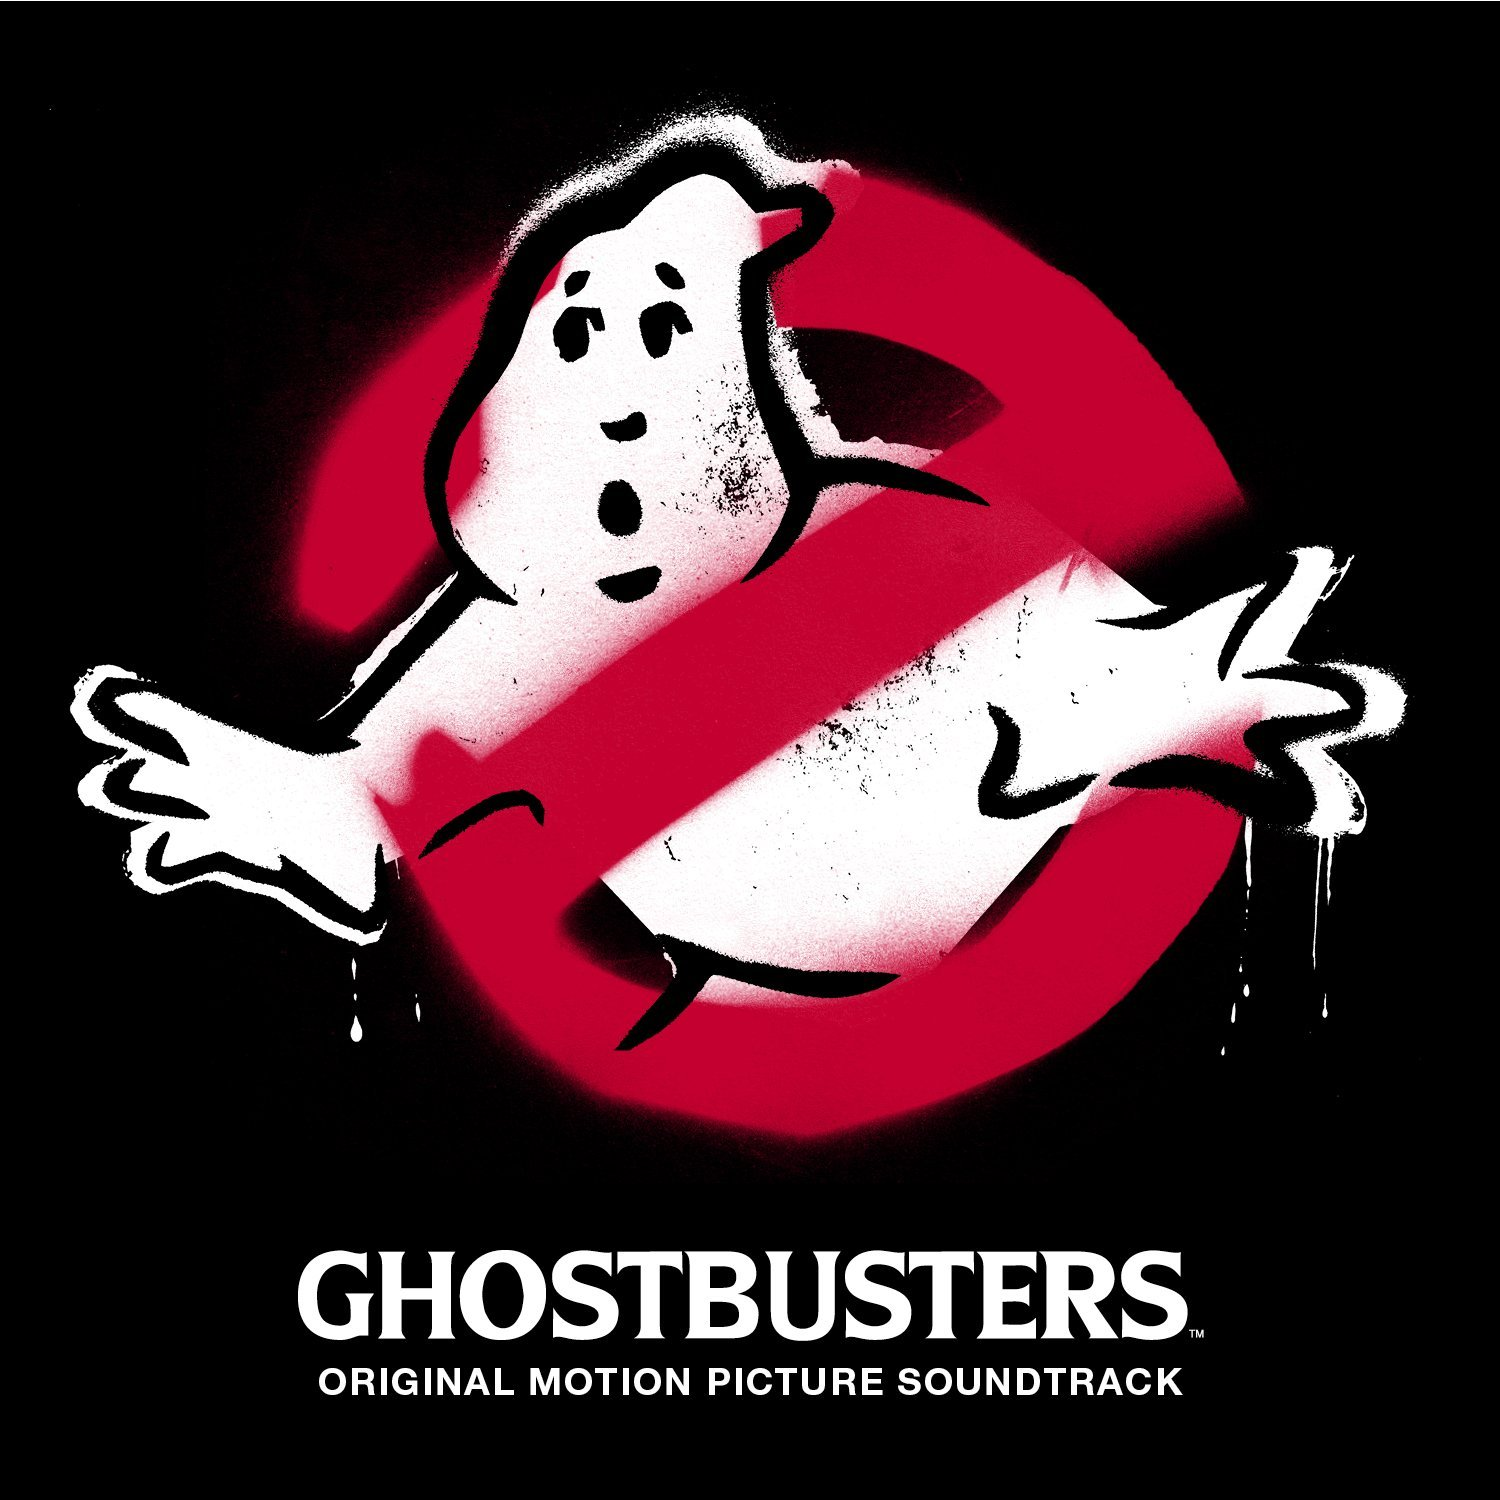 Ghostbusters [2016 Original Motion Picture Soundtrack] (Review)